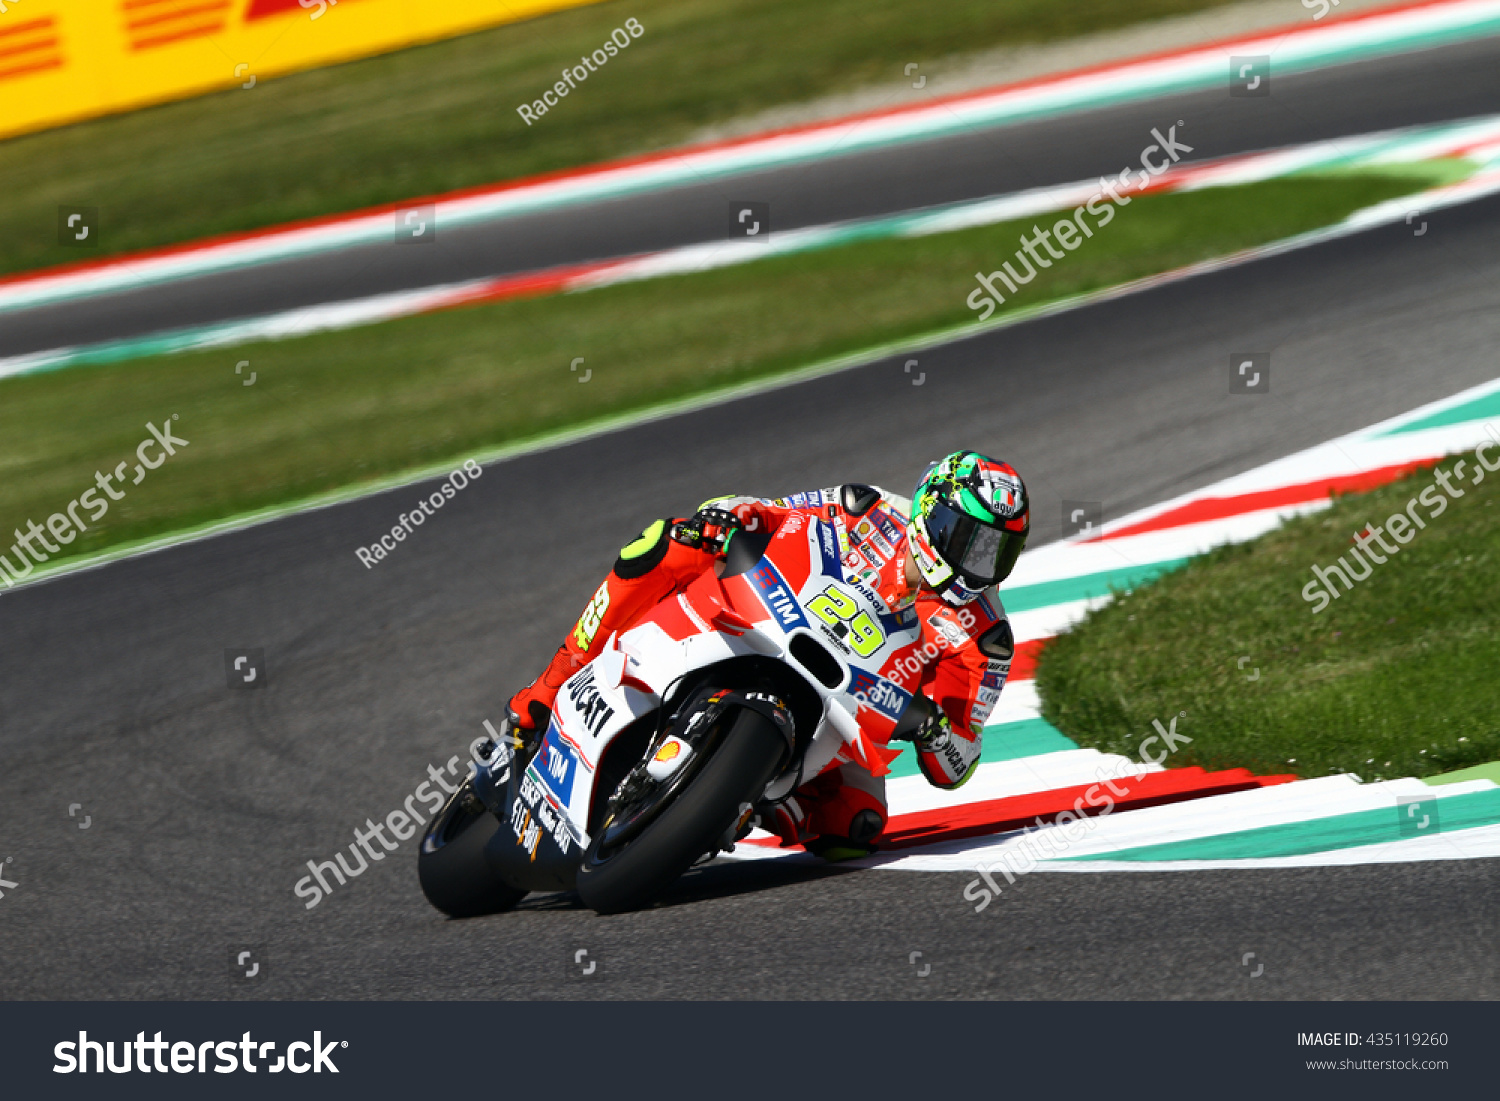 Circuit Italia Motogp : Mugello italia may italian ducati stock photo royalty free